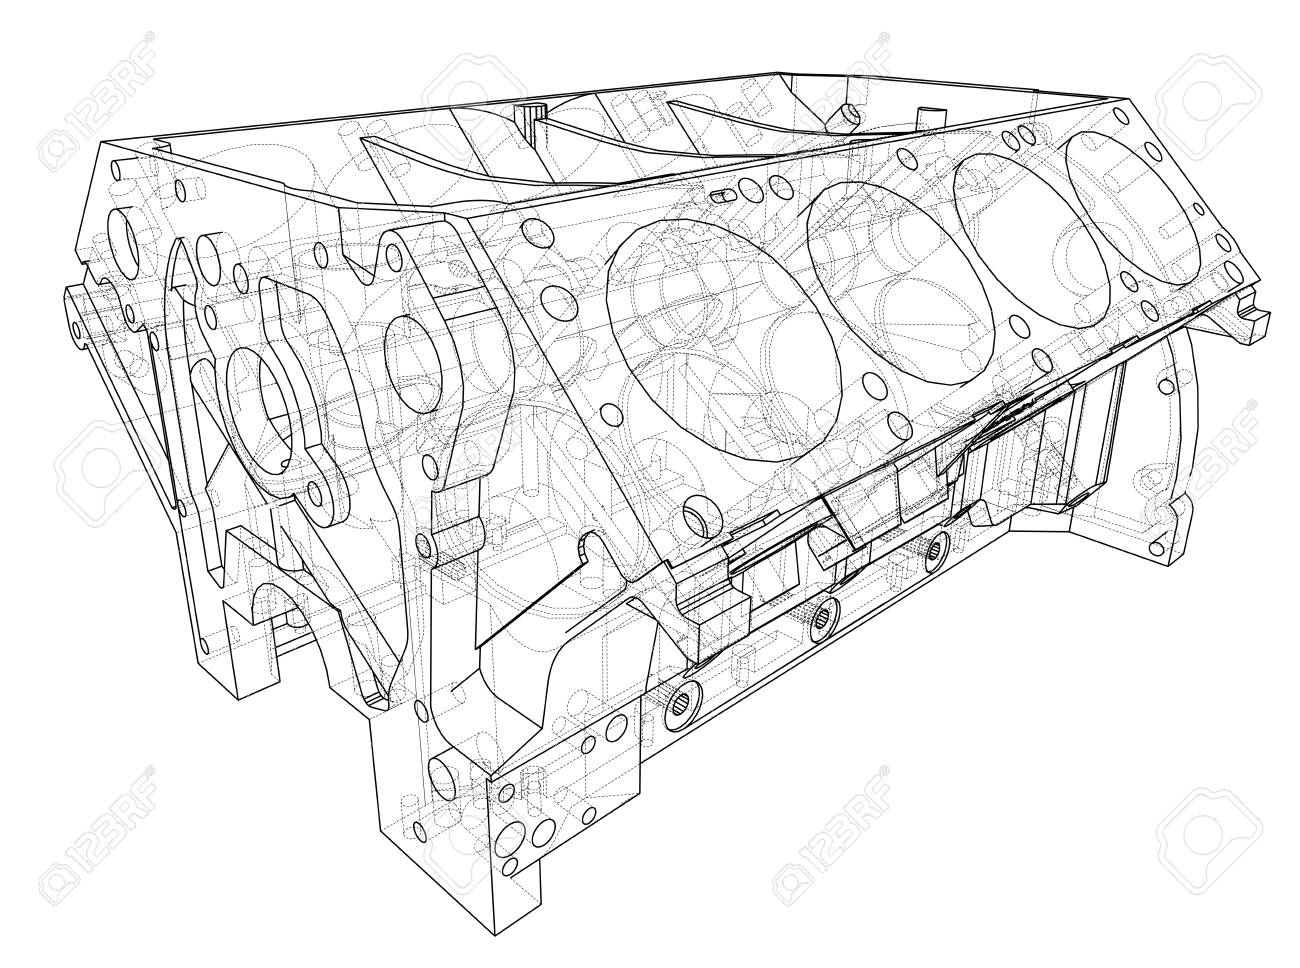 Engine block sketch. Vector rendering of 3d. Wire-frame style... on schematic wiring diagram, circuit diagram, computer schematic diagram, sony schematic diagram, schematic symbols, schematic drawing, schematic server girl, schematic software, dell xps schematic diagram, iphone 4 schematic diagram, hp pavilion dv7 parts diagram, schematic diagram of a hospital, simple schematic diagram, schematic circle diagram, schematic wheel diagram, power supply schematic diagram, tesla coil schematic diagram, schematic layout, schematic heaven,